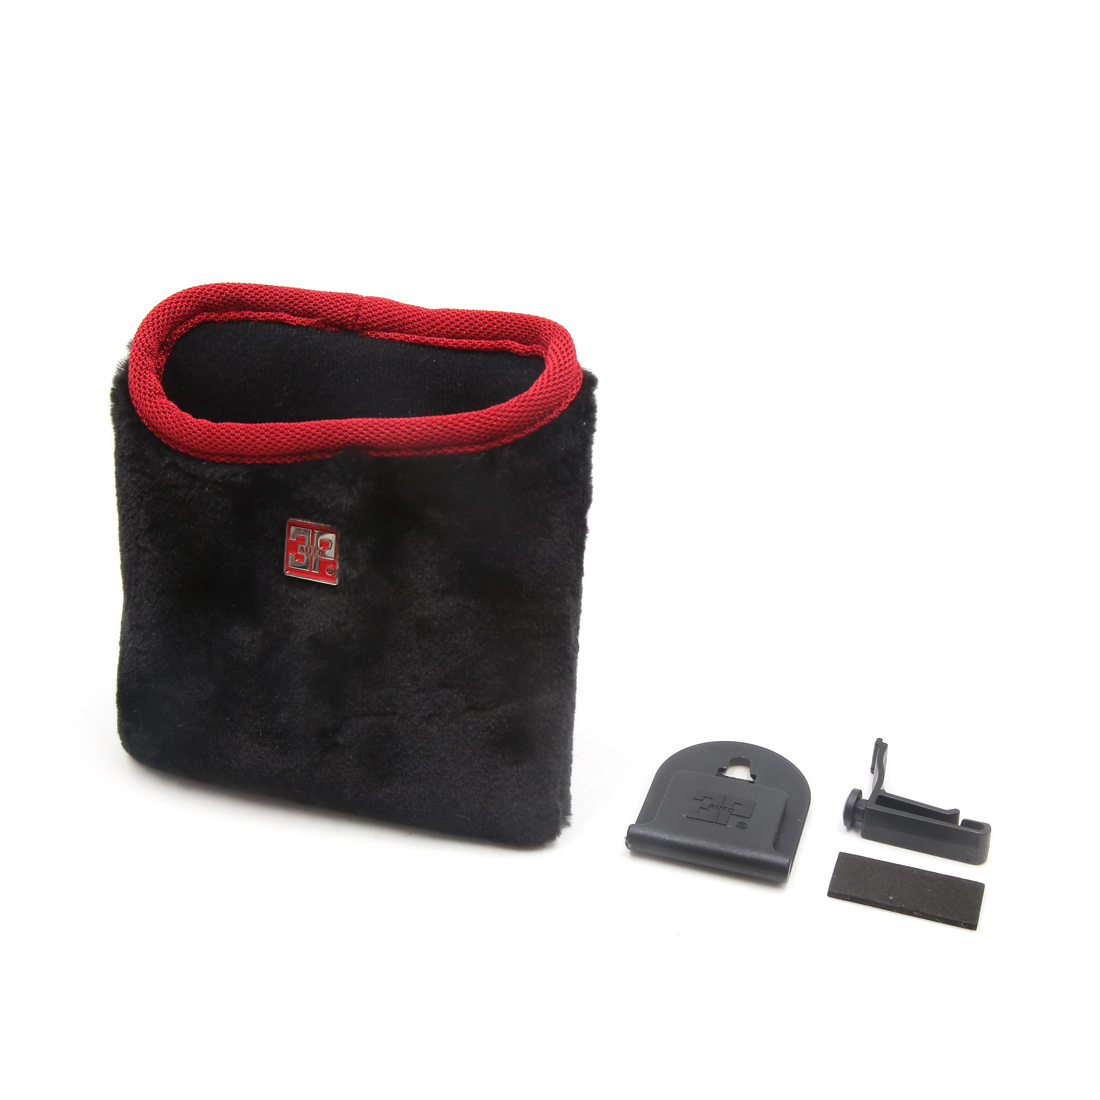 Auto Car Air Vent Cell Phone Mount Storage Bag Pouch Holder Organizer Red Black